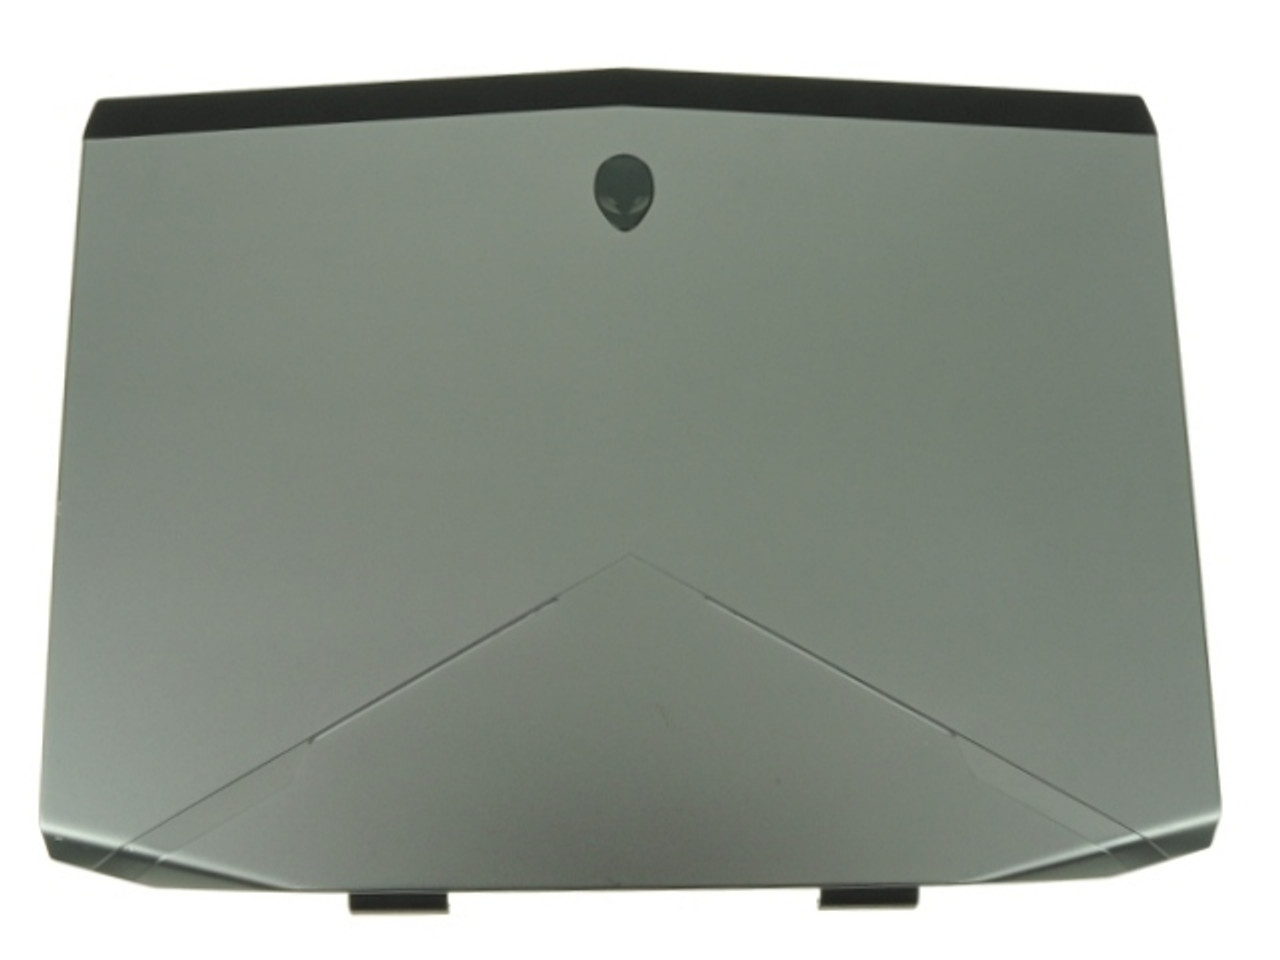 "Alienware 14 R1 14"" LCD Back Cover Lid Assembly - XHGGM"